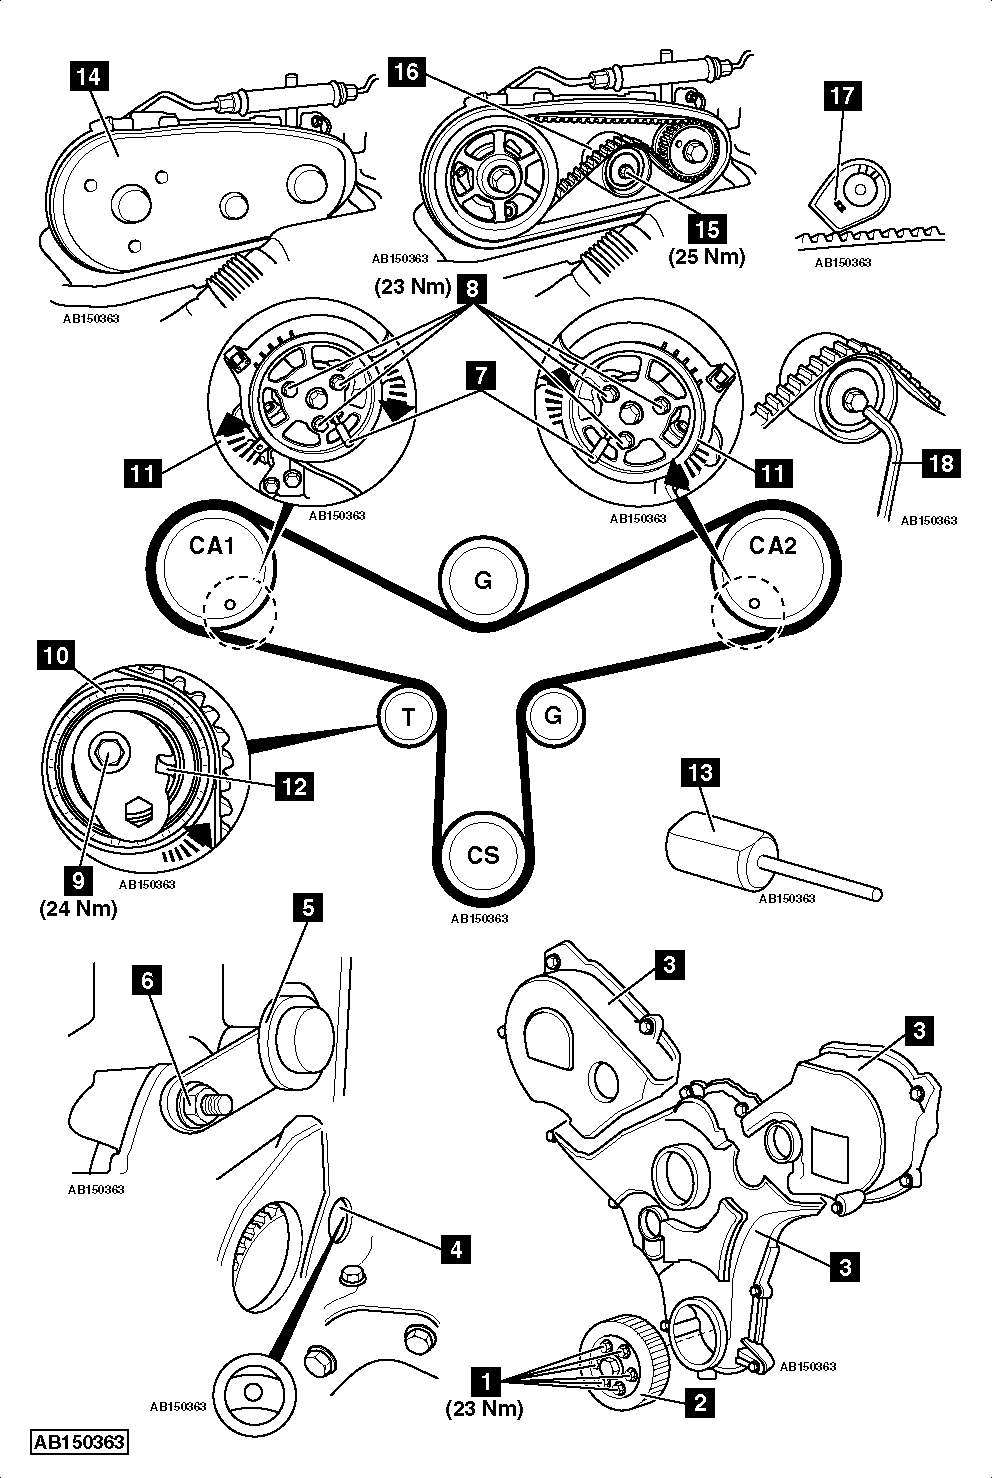 2010 Range Rover Engine Diagram Wiring Diagrams Freelander 4 Cylinder Coolant Get Free Image About